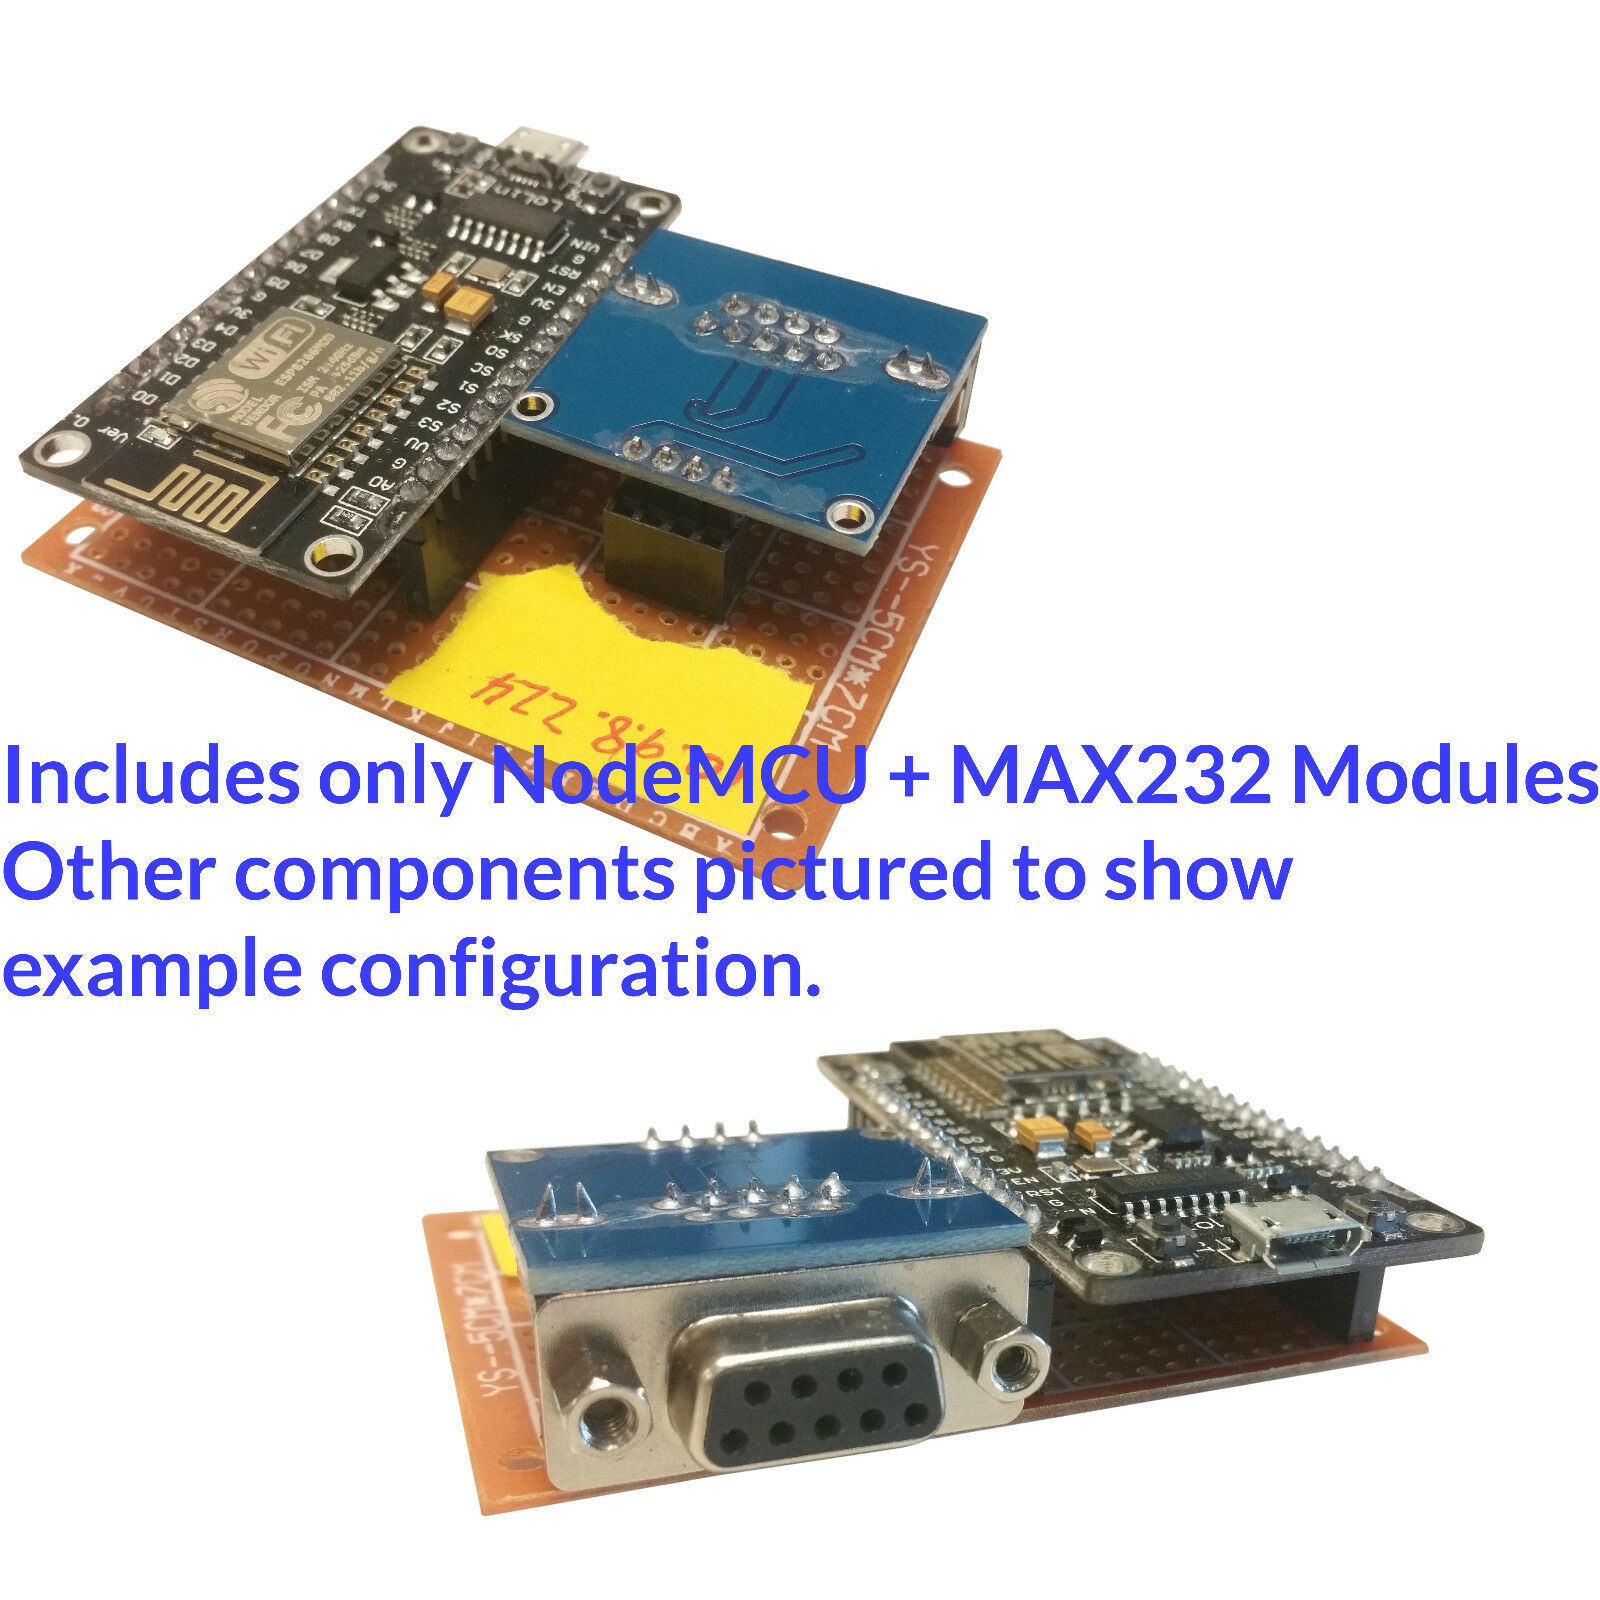 Details about ESP8266 NodeMCU + MAX232 RS-232 ESP-Link Serial Wifi Gateway  Kit NO HEADERS